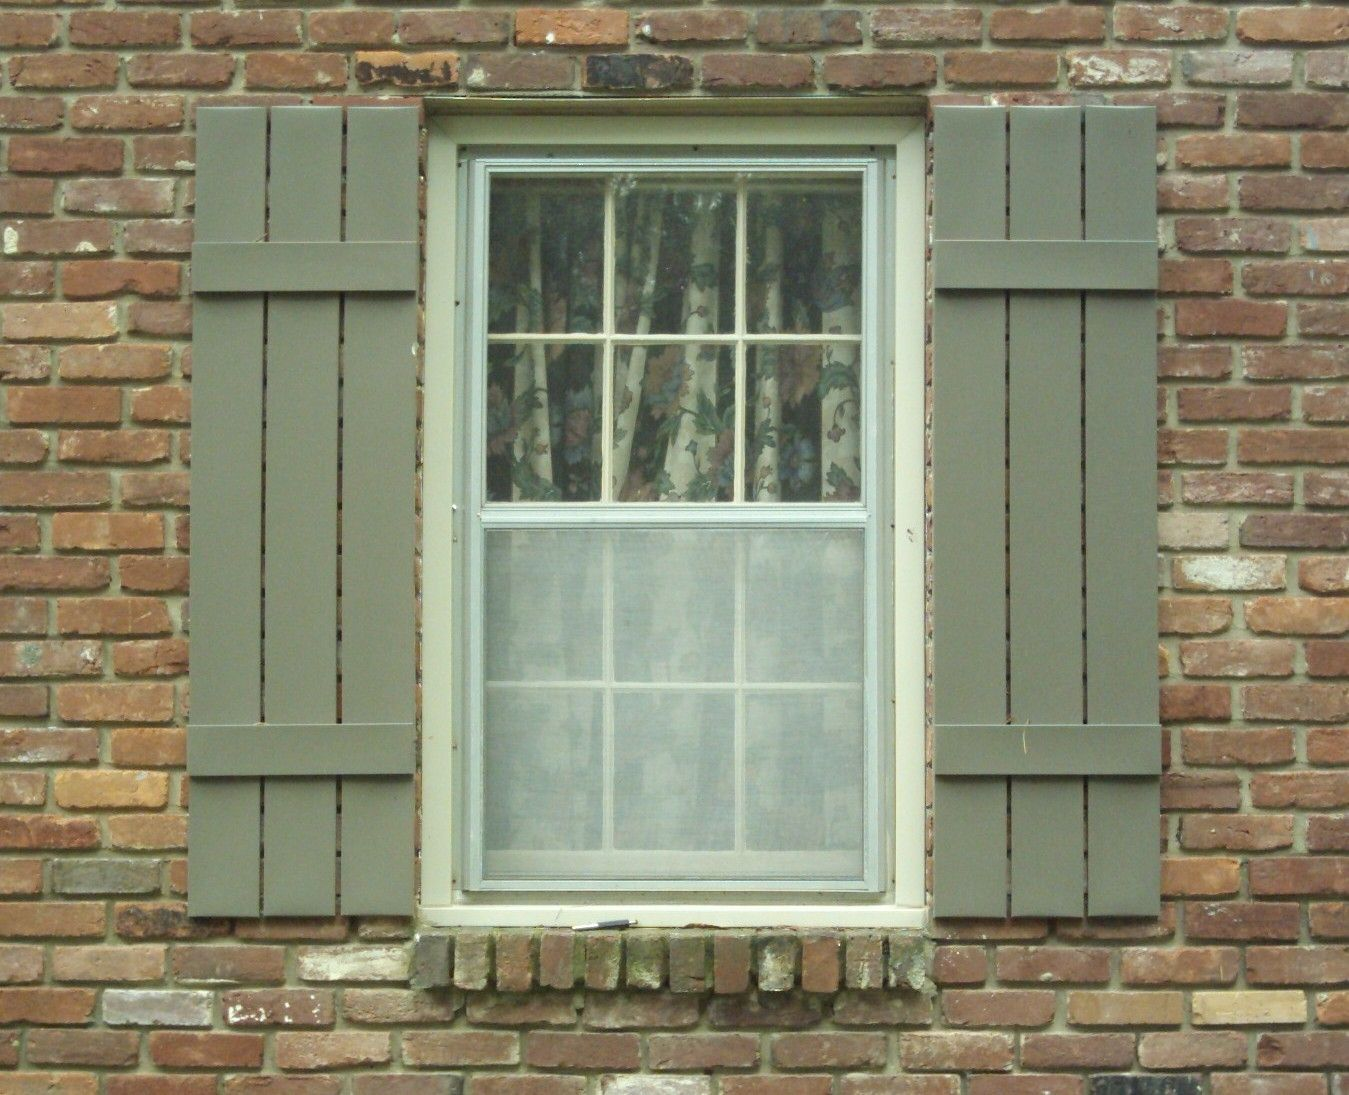 Image result for board and batten shutters   board batten shutters on build your own shutters, wood shed build shutters, build wooden shutters, wood house build shutters, making house shutters, diy shutters, faux outdoor window shutters, farm shutters,